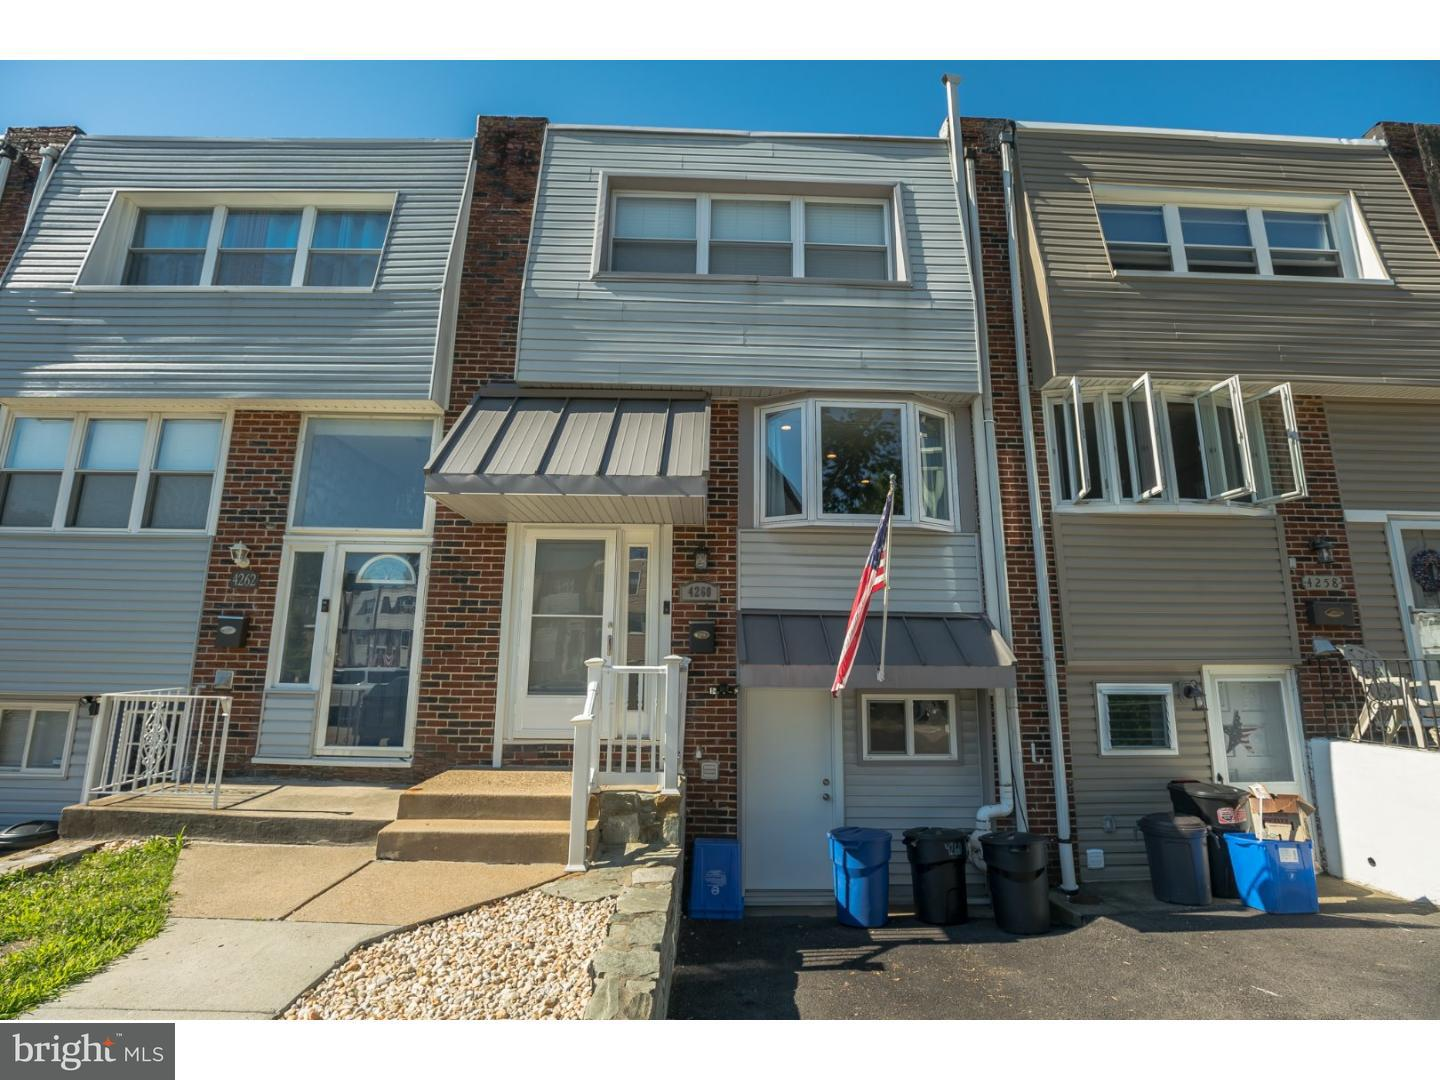 4260 Lawnside Road Philadelphia, PA 19154